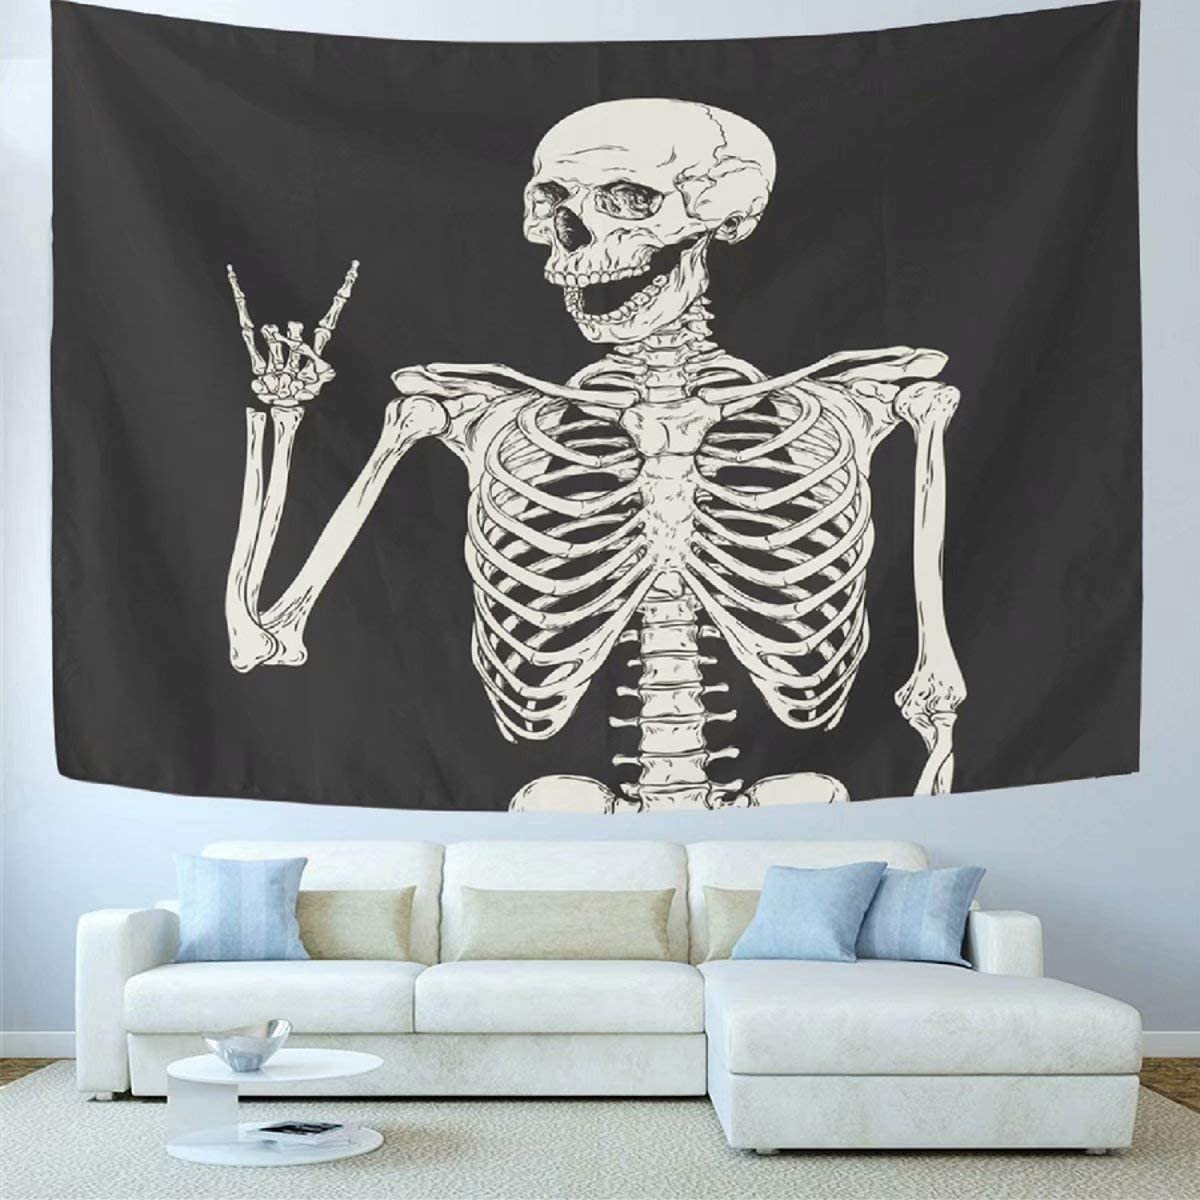 Wamika Tapestry Rock and Roll Skull Home Decor Tapestries Wall Art Funny Skeleton Tapestry Wall Hanging Boho Hippie Bohemian Tapestry for Dorm Living Room Bedroom Black and White 60 X 90 Inches